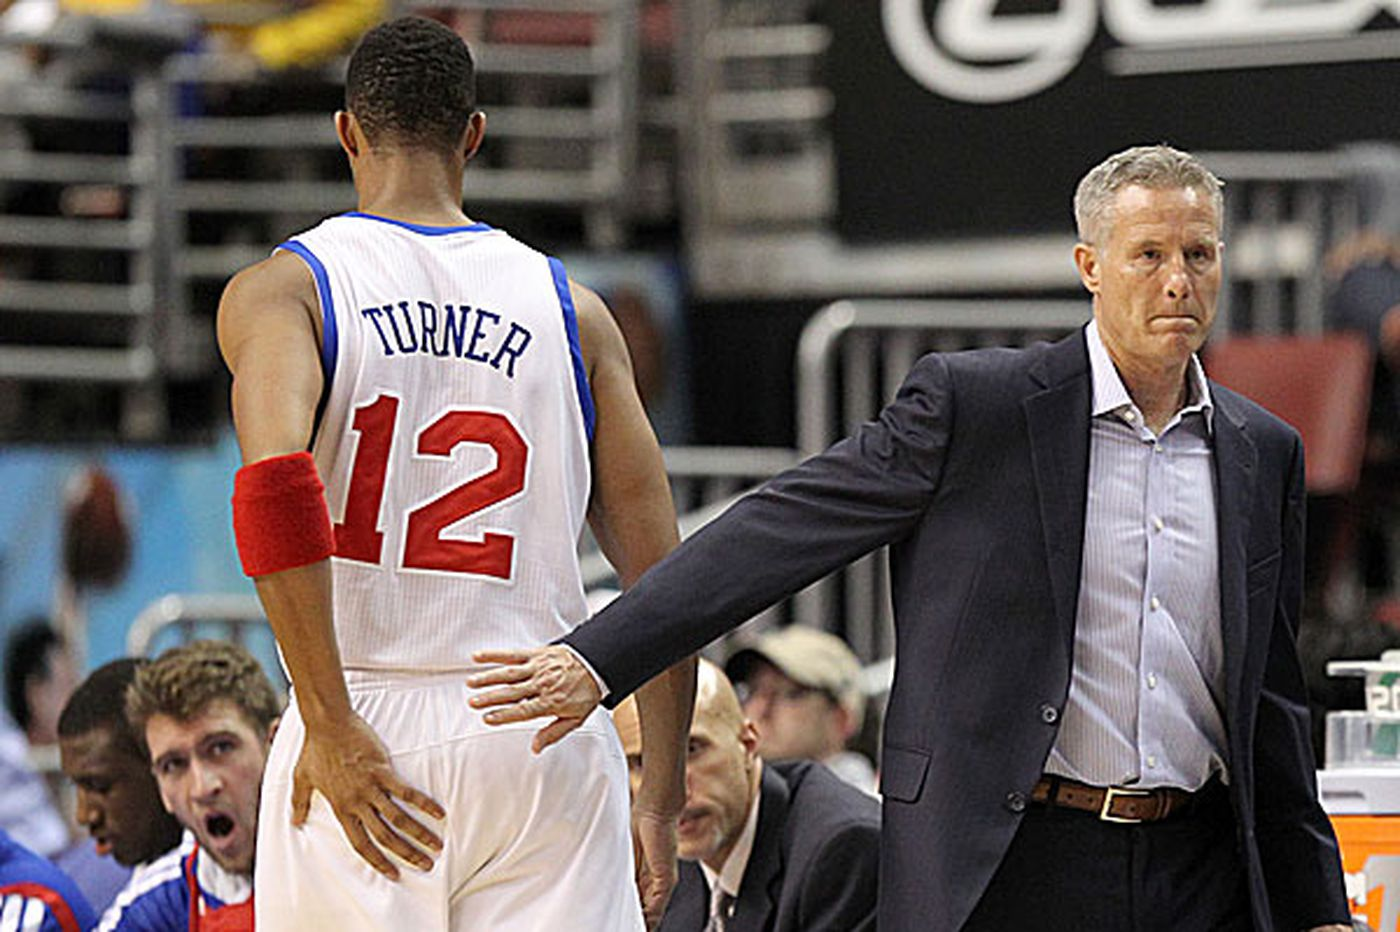 Sixers Notes: Brown's team is keeping it simple